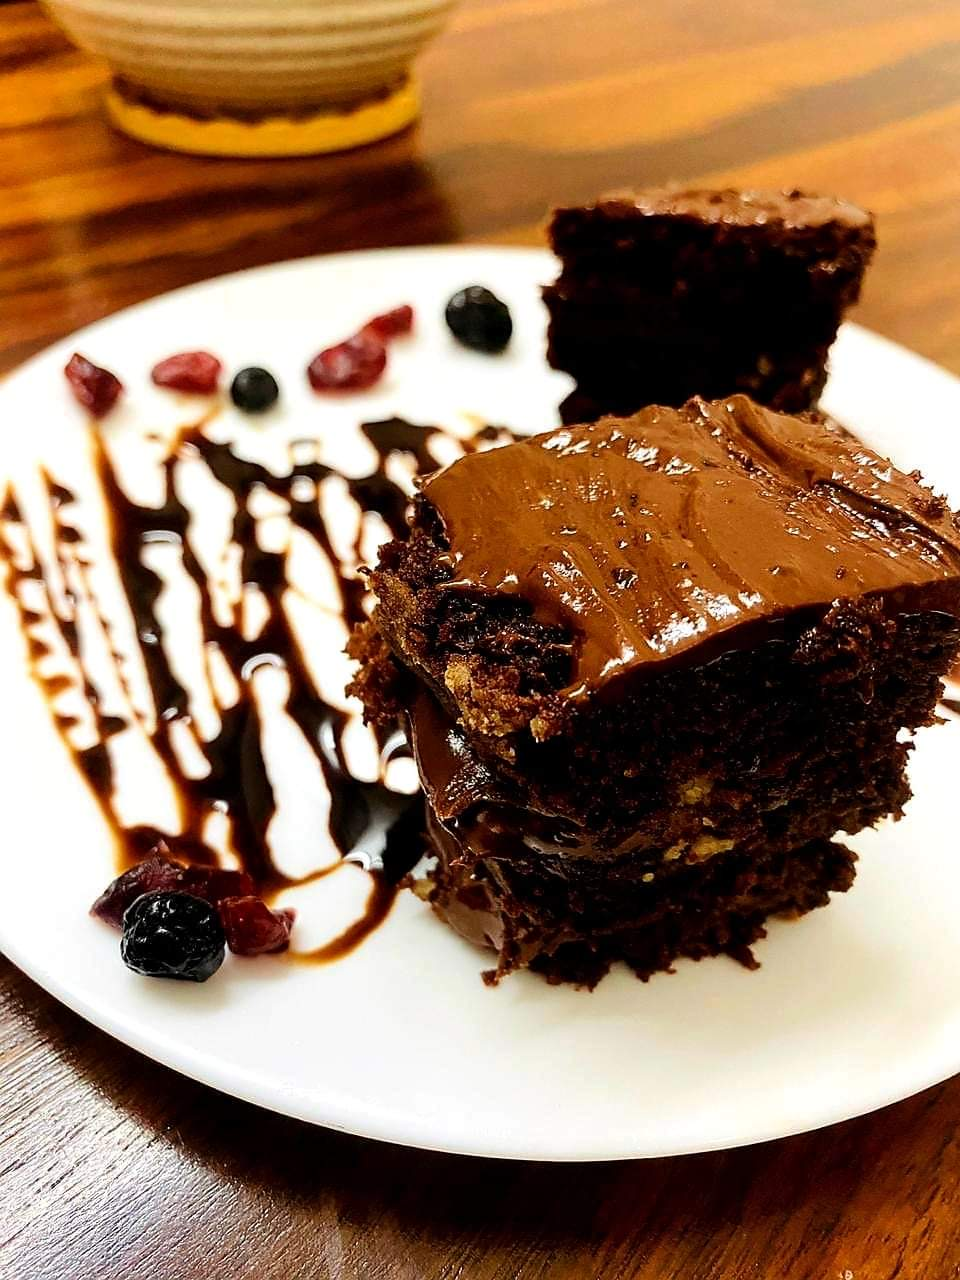 Chocolate Cake with dried berries